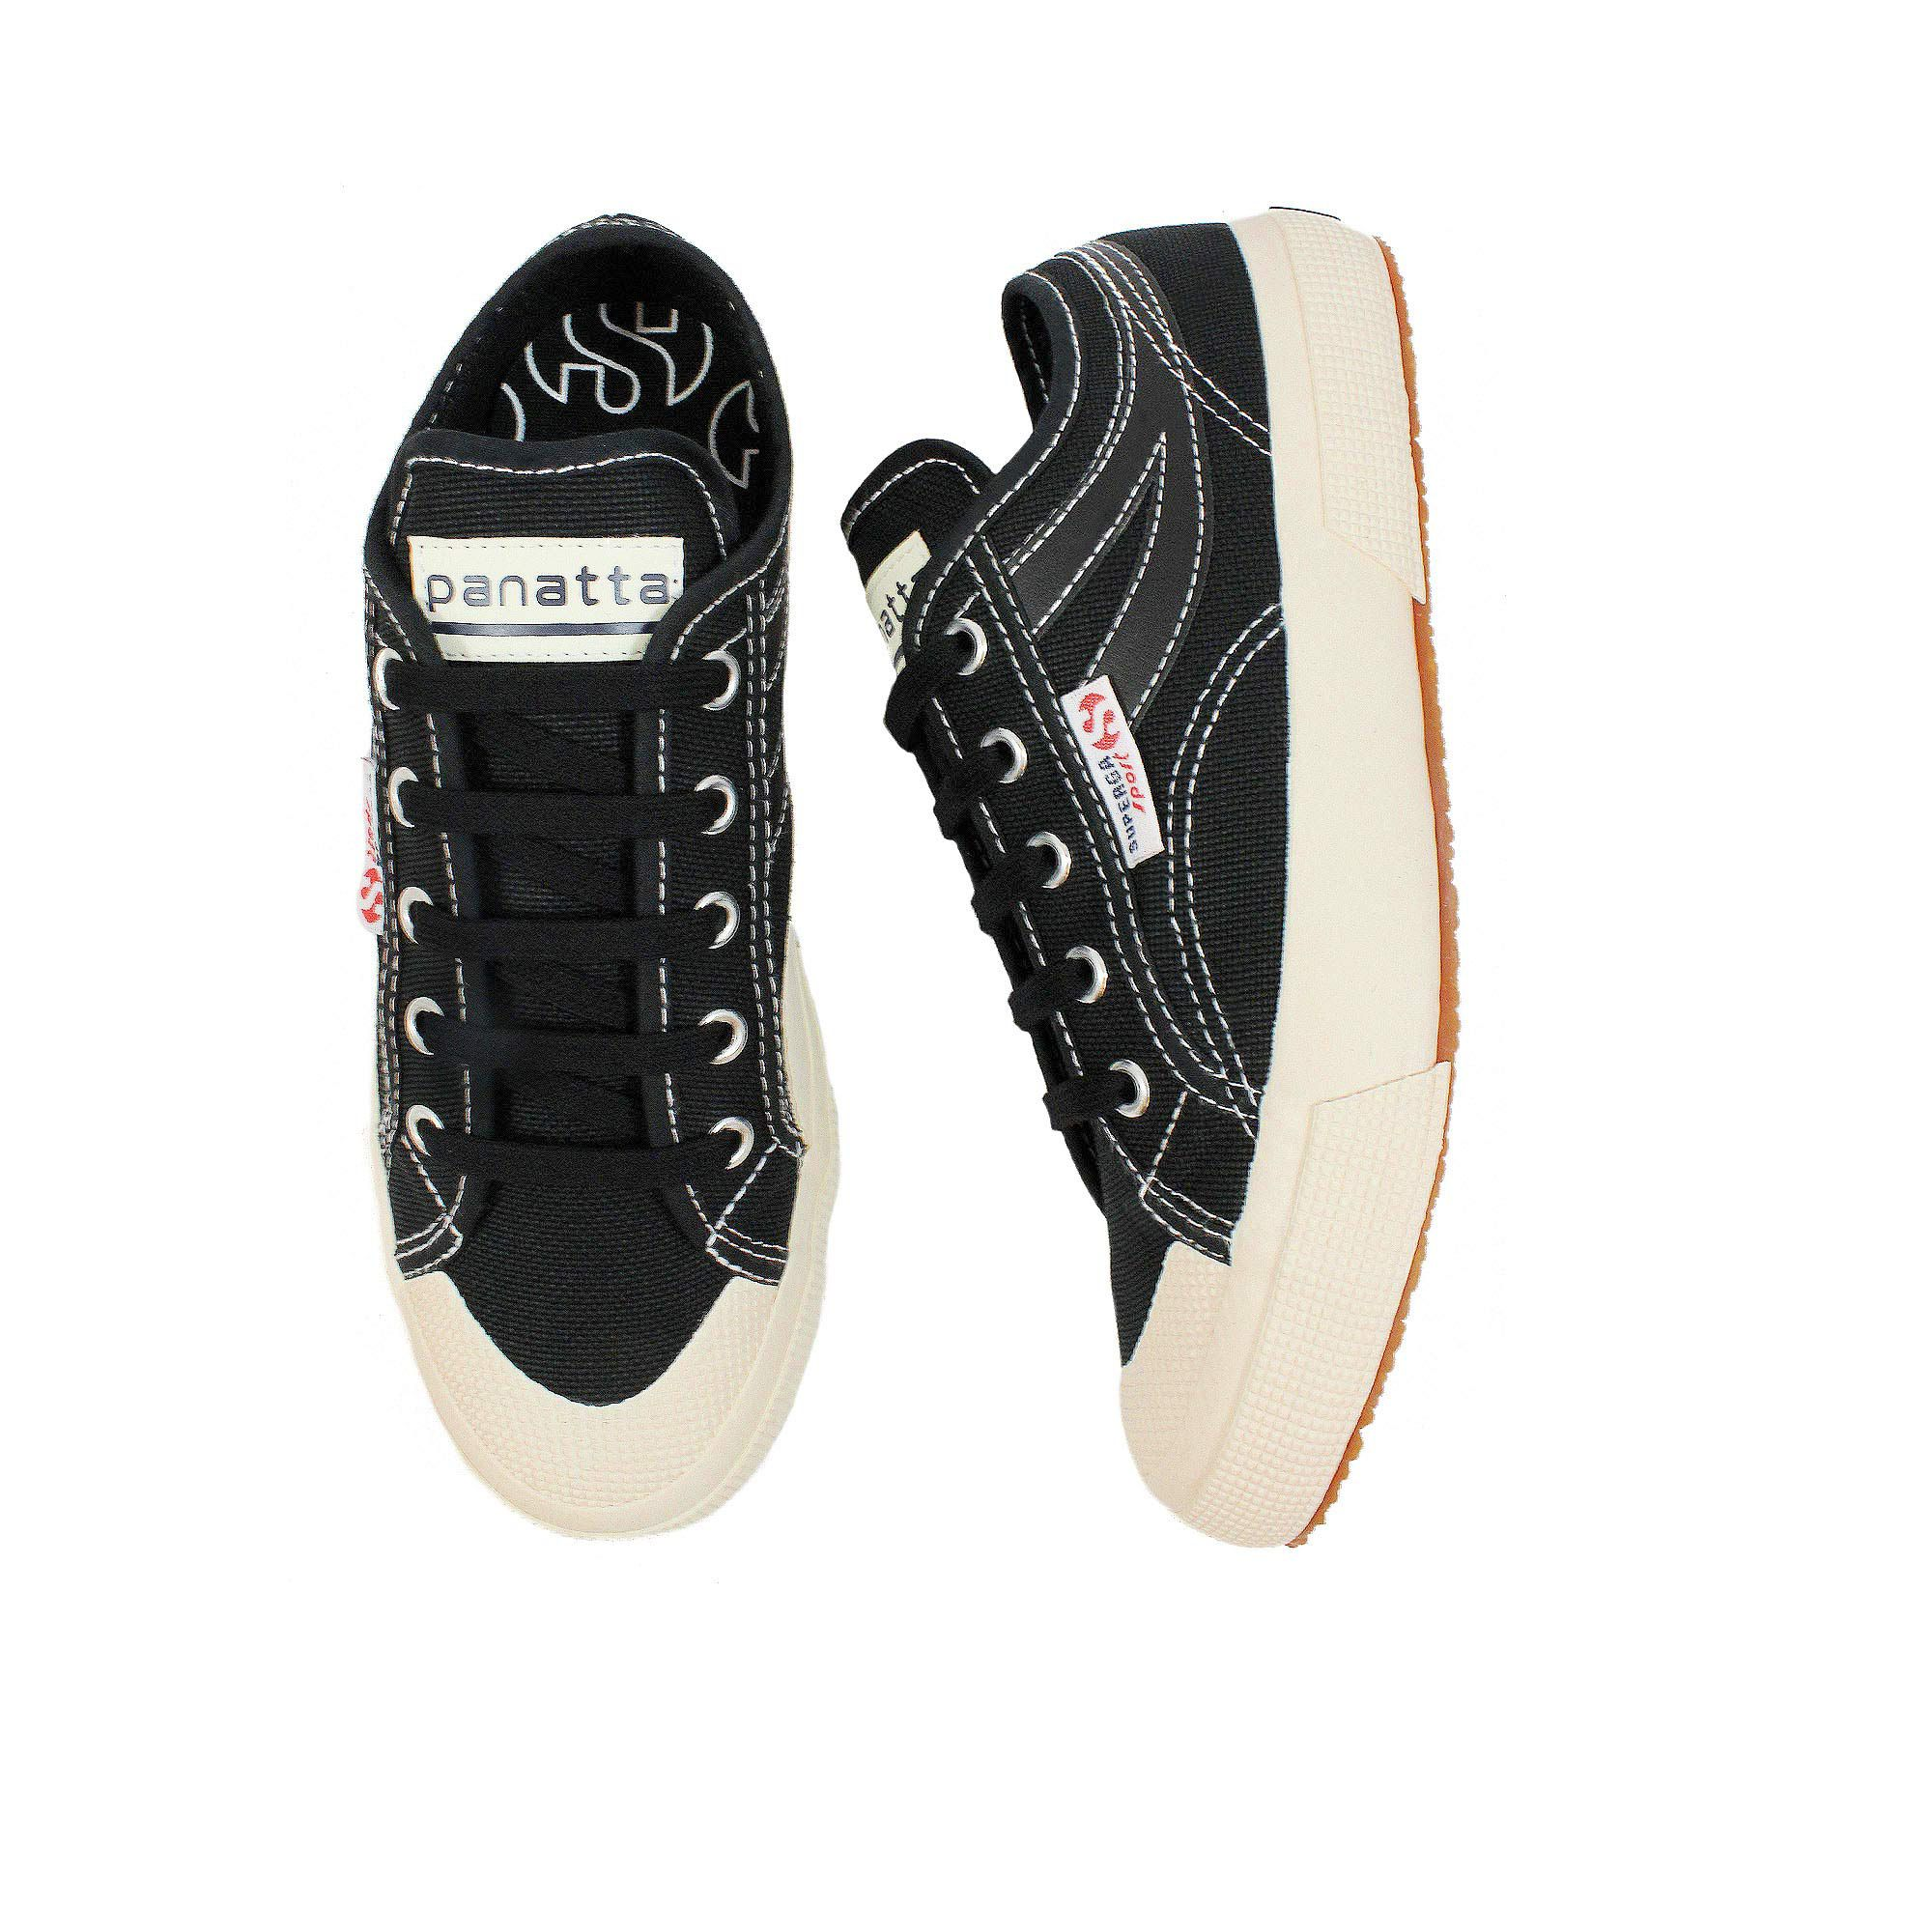 2750 COTU 2.0 PANATTA BLACK - WHITE